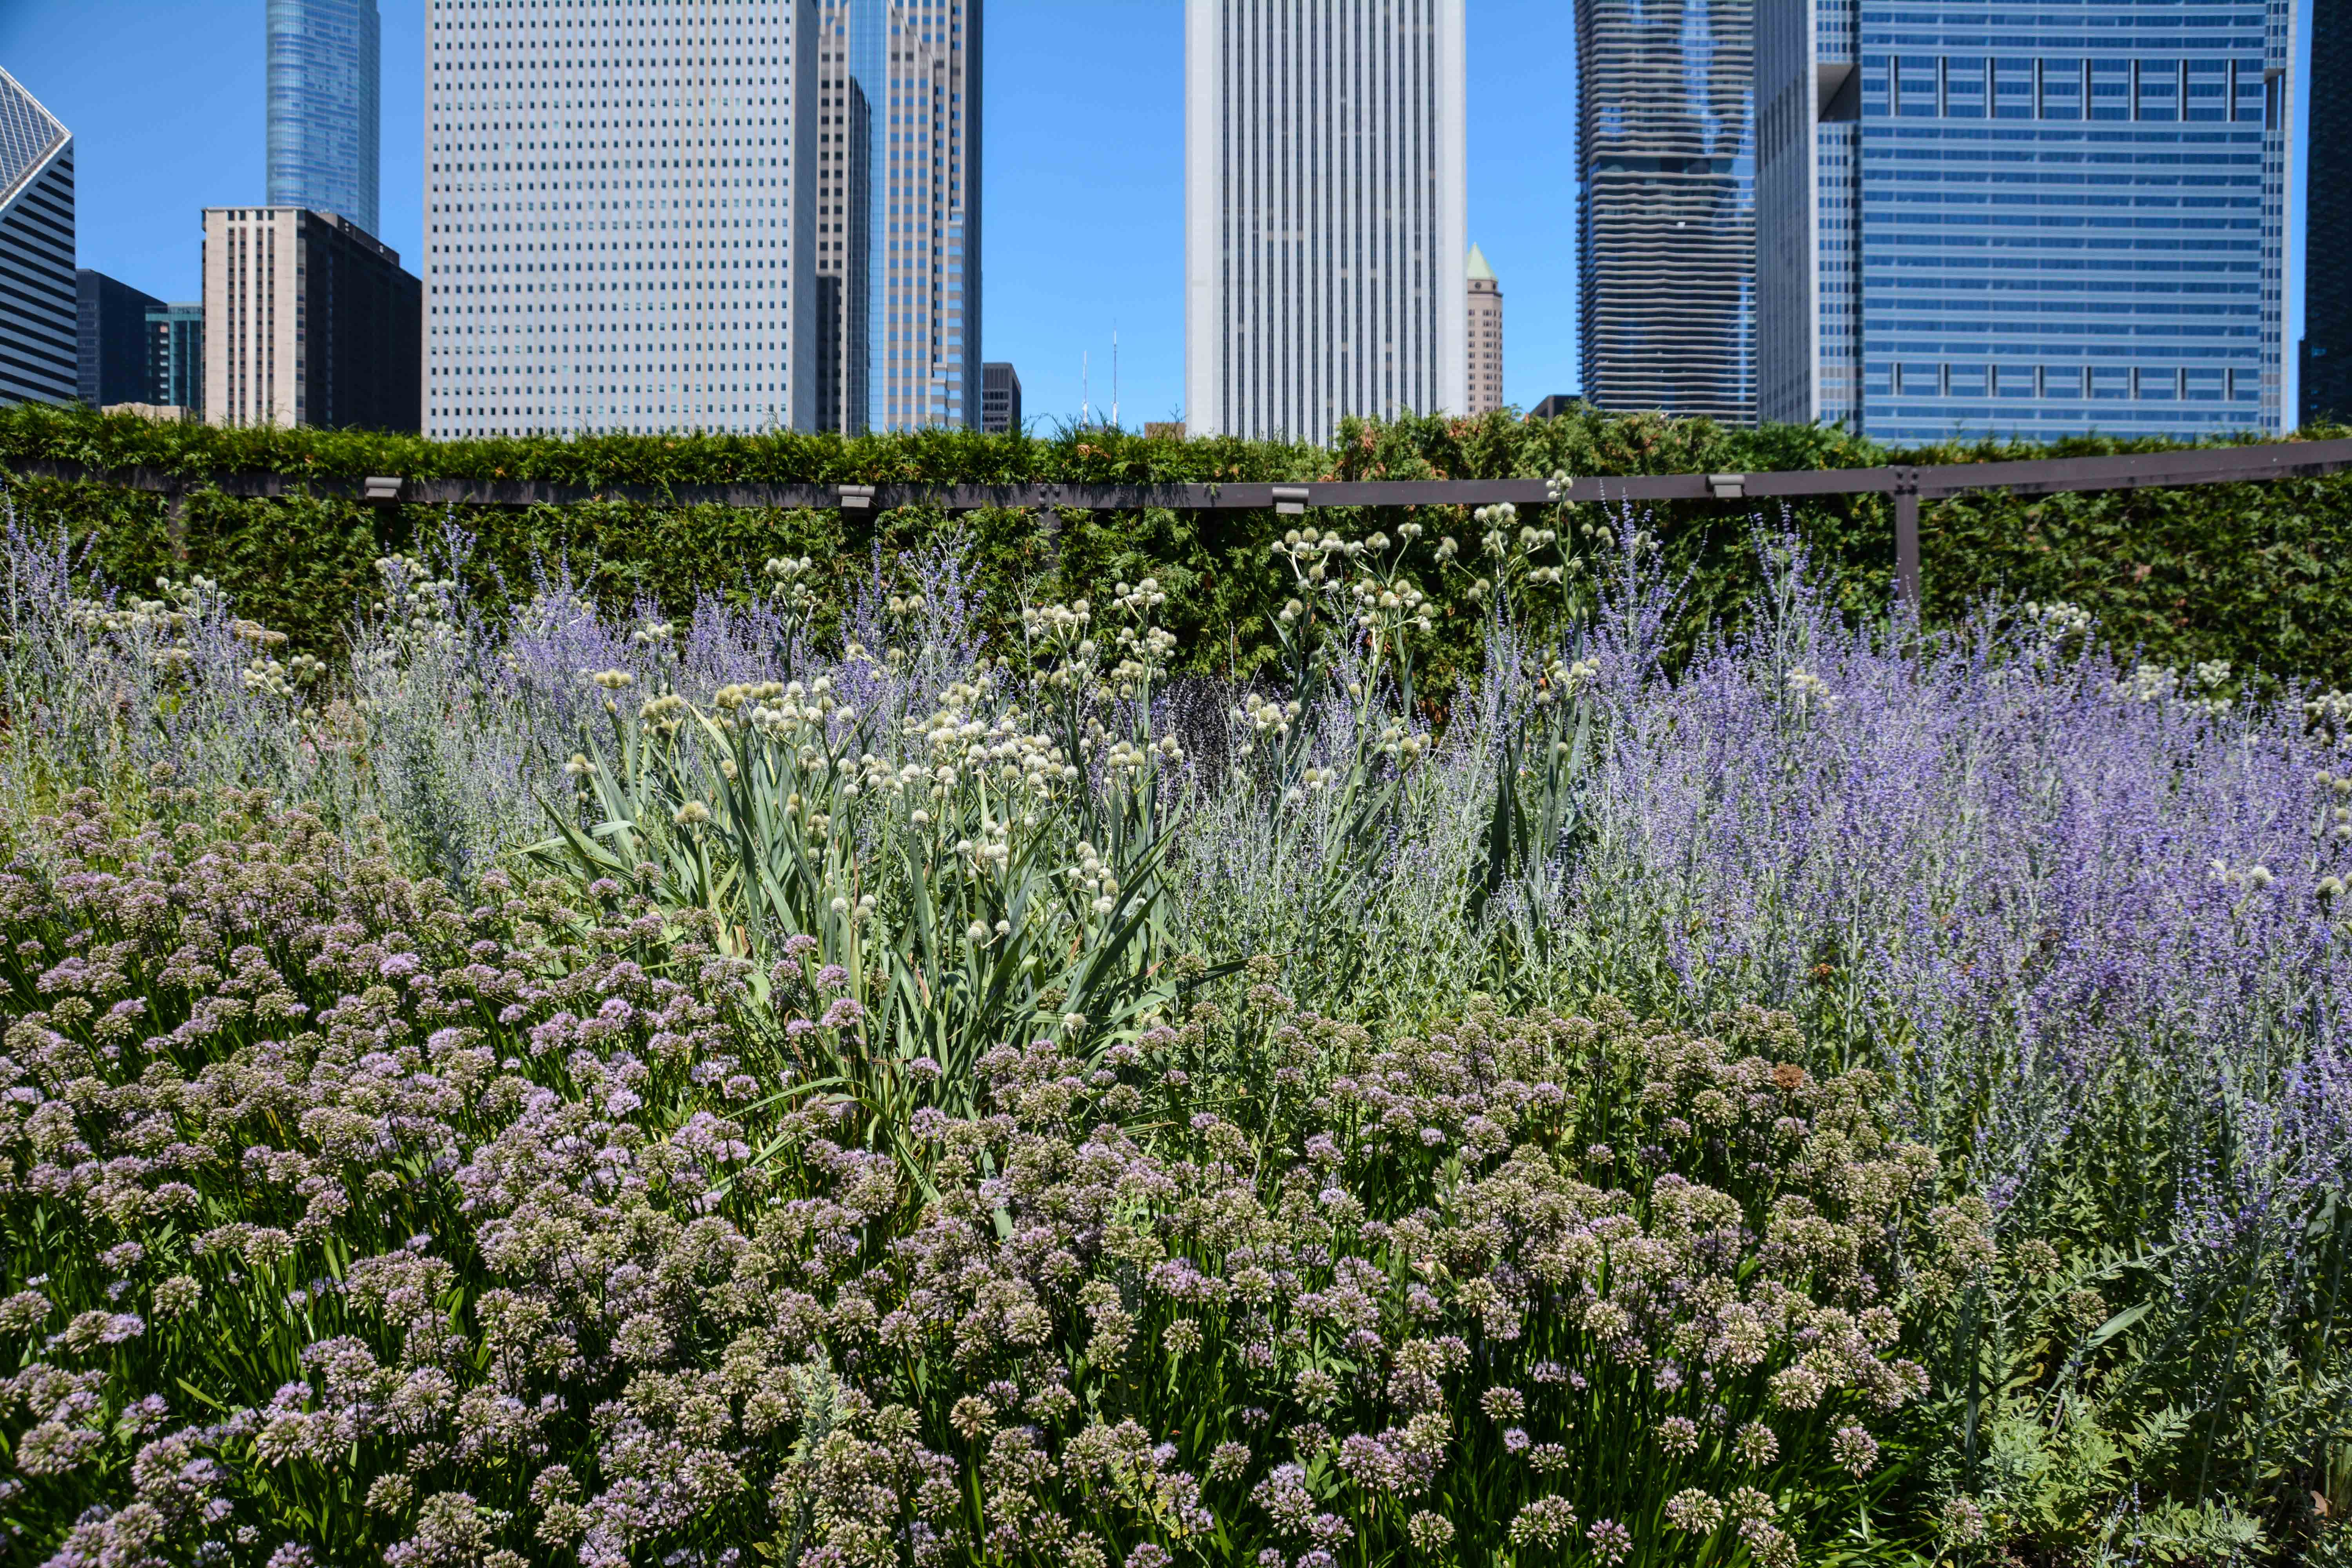 The Lurie Garden - Our Great Midwest Road Trip, Thinking Outside the Boxwood